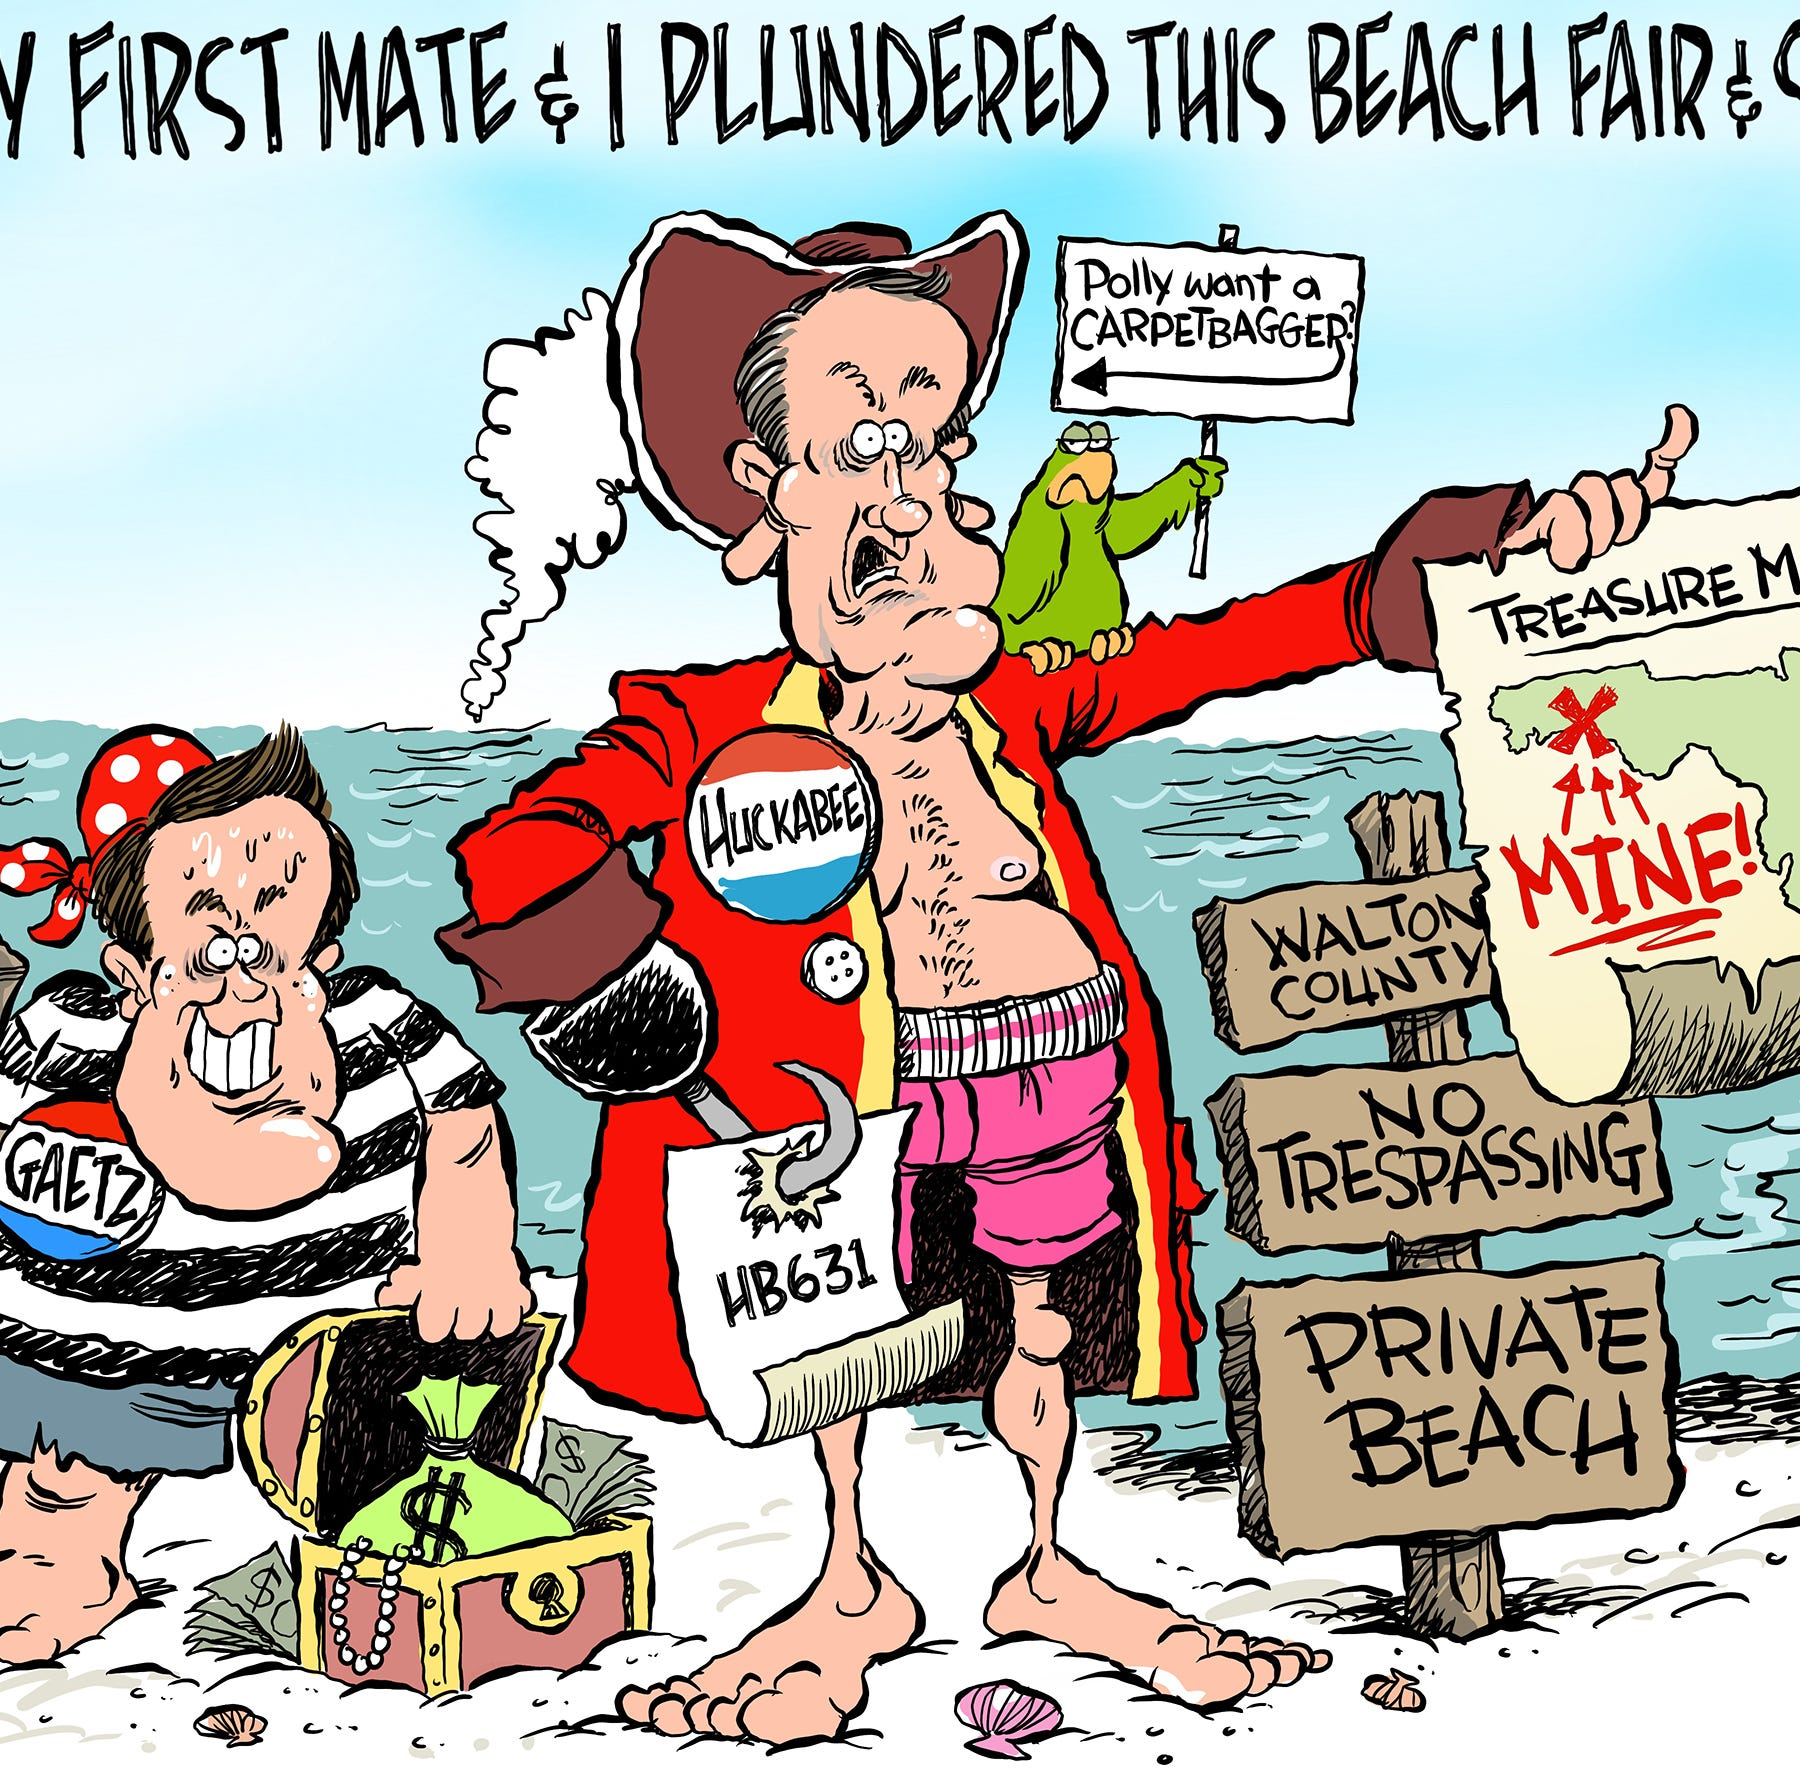 Marlette: Huckabee pirates beach from the peeps!